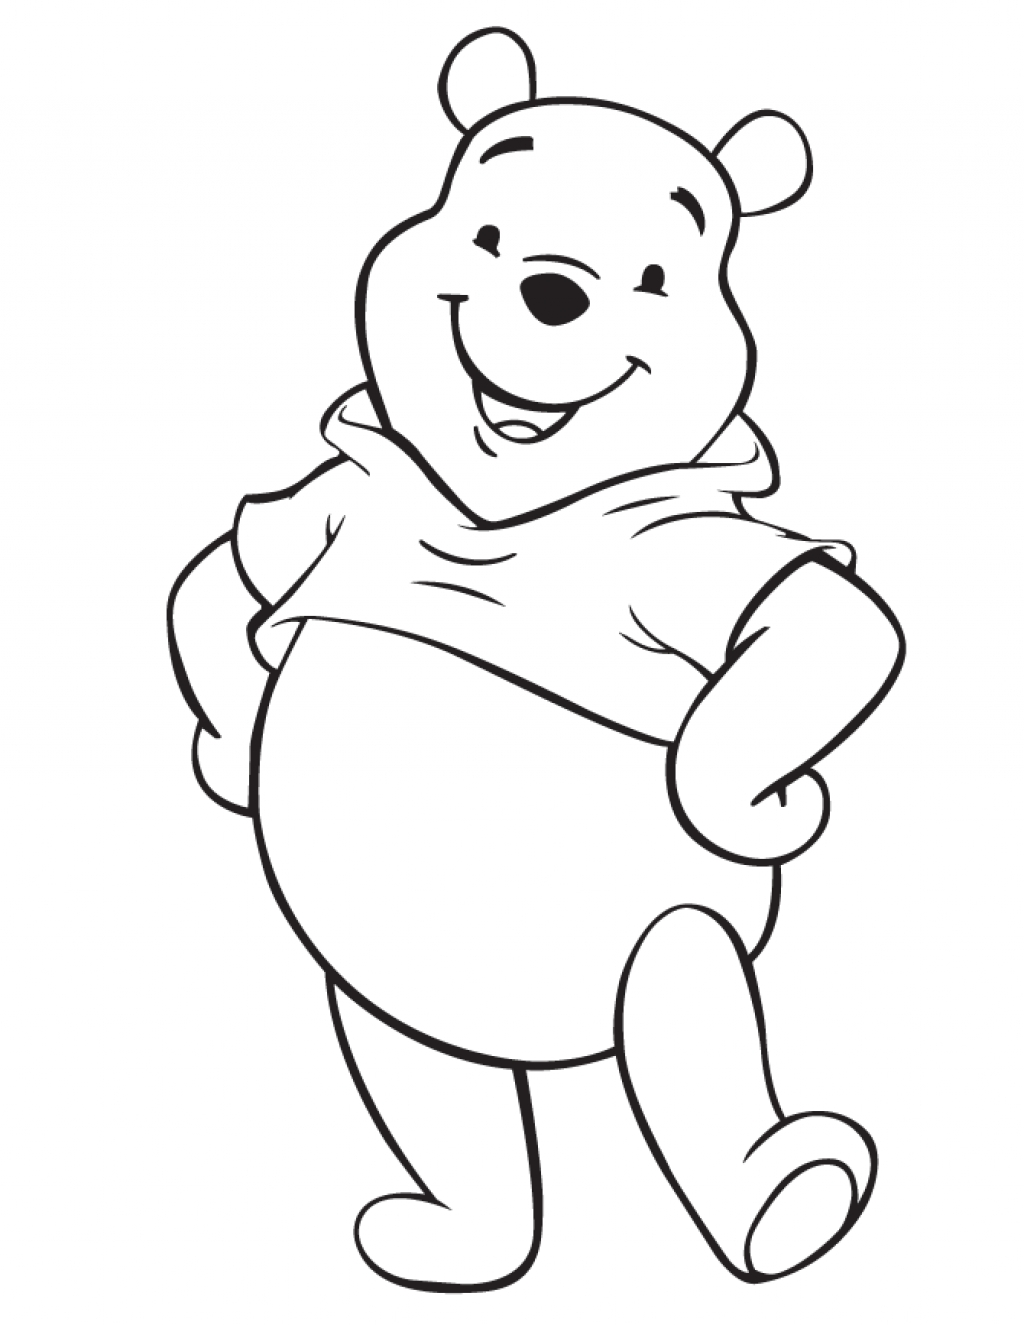 1024x1325 Disney Characters Coloring Pages Easy Baby Disney Cartoon